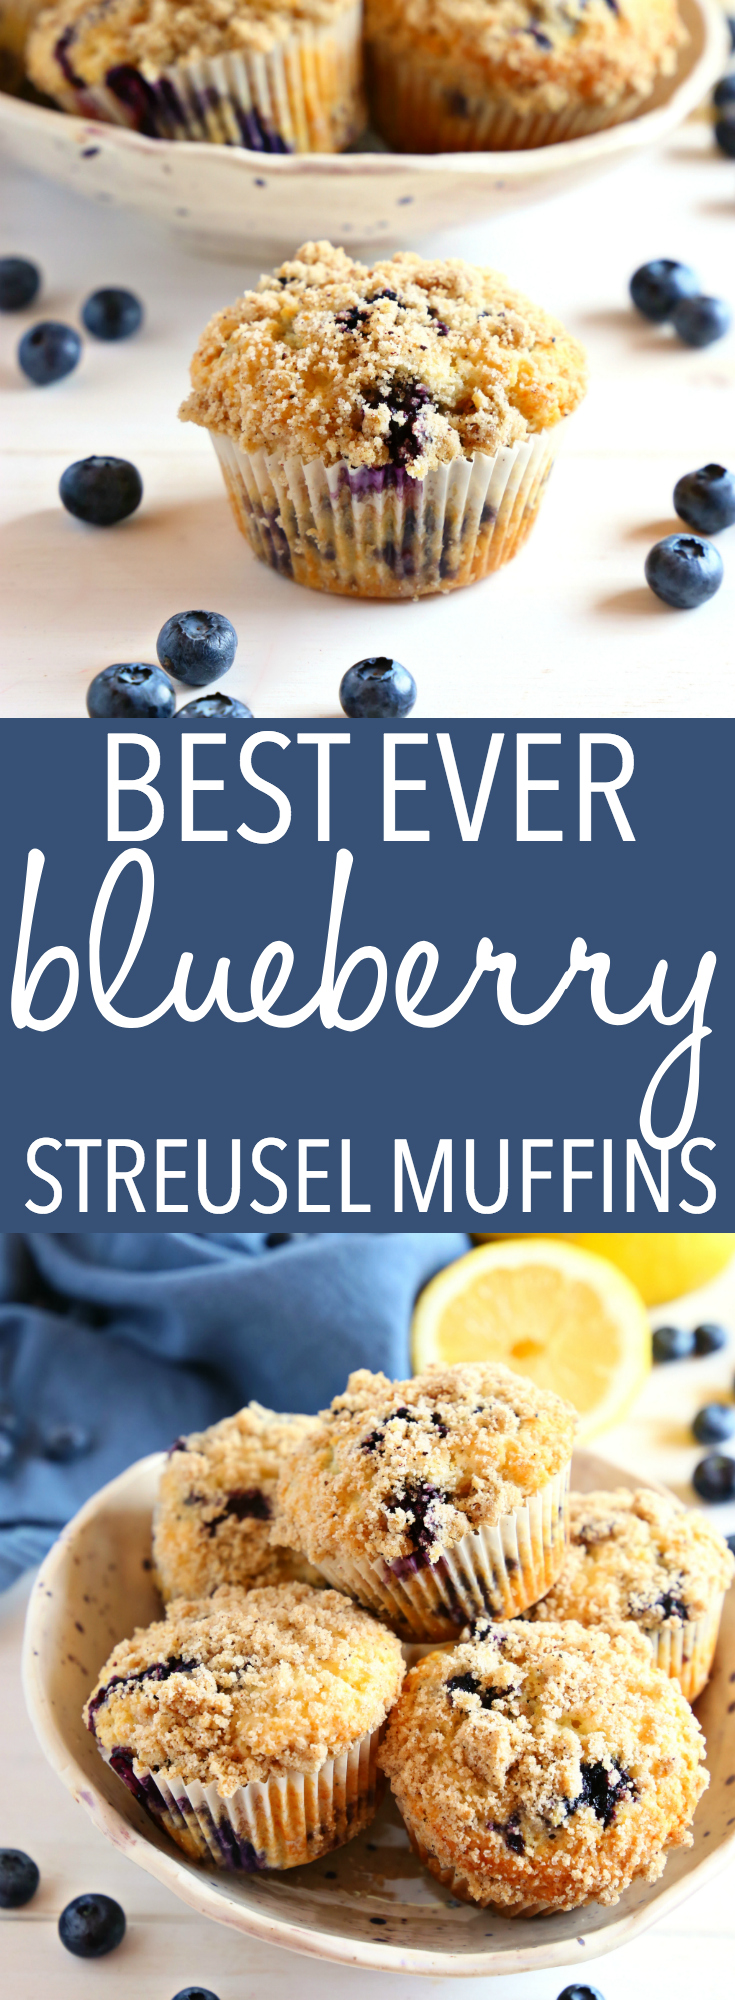 These Best Ever Blueberry Streusel Muffins are the perfect sweet snack! This is such an easy recipe that's packed with fresh blueberries and a sweet, crunchy streusel topping! Recipe from thebusybaker.ca! #blueberry #muffins #bestever #best #recipe #fruit #healthy #homemade #sweet #snack #homesteading  via @busybakerblog